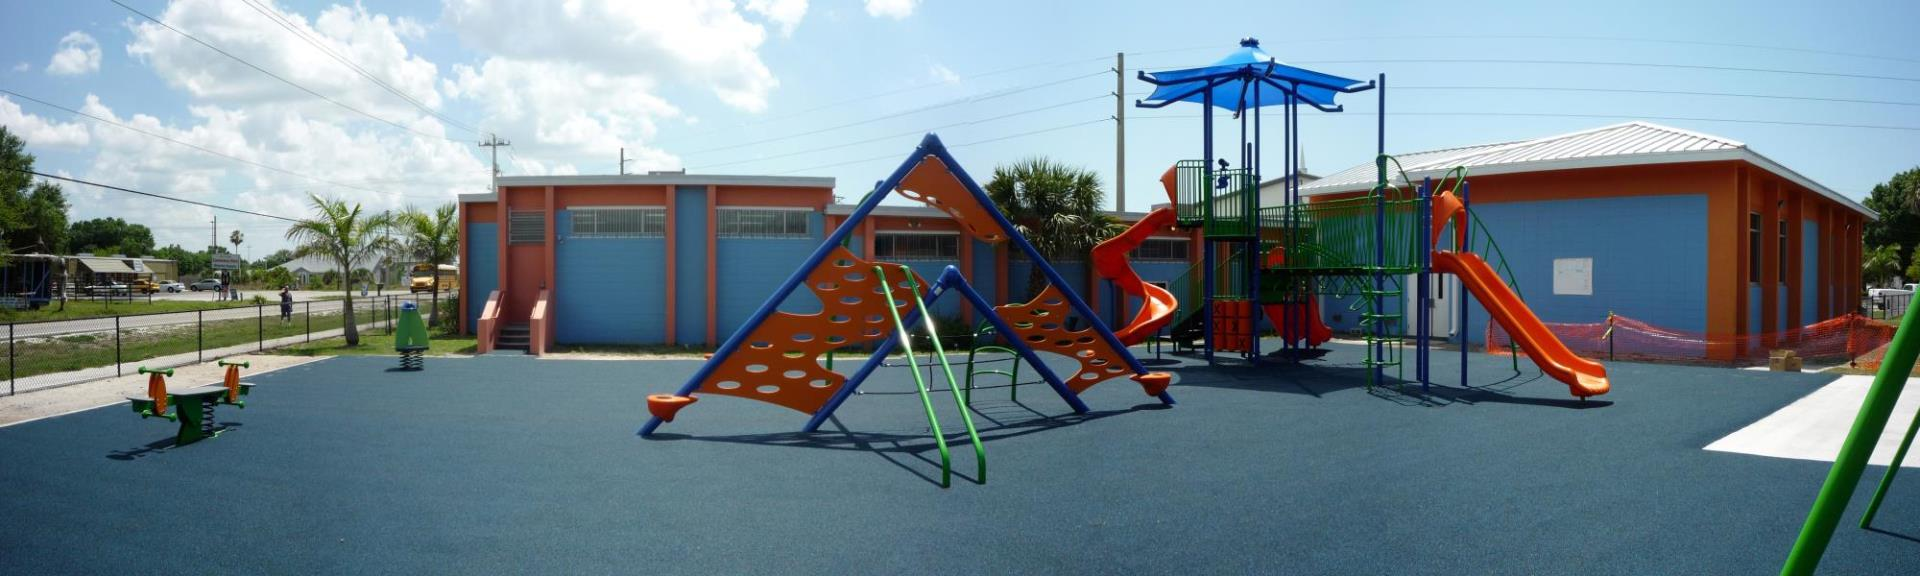 Photo of Cooper Street Recreation Center Play Ground